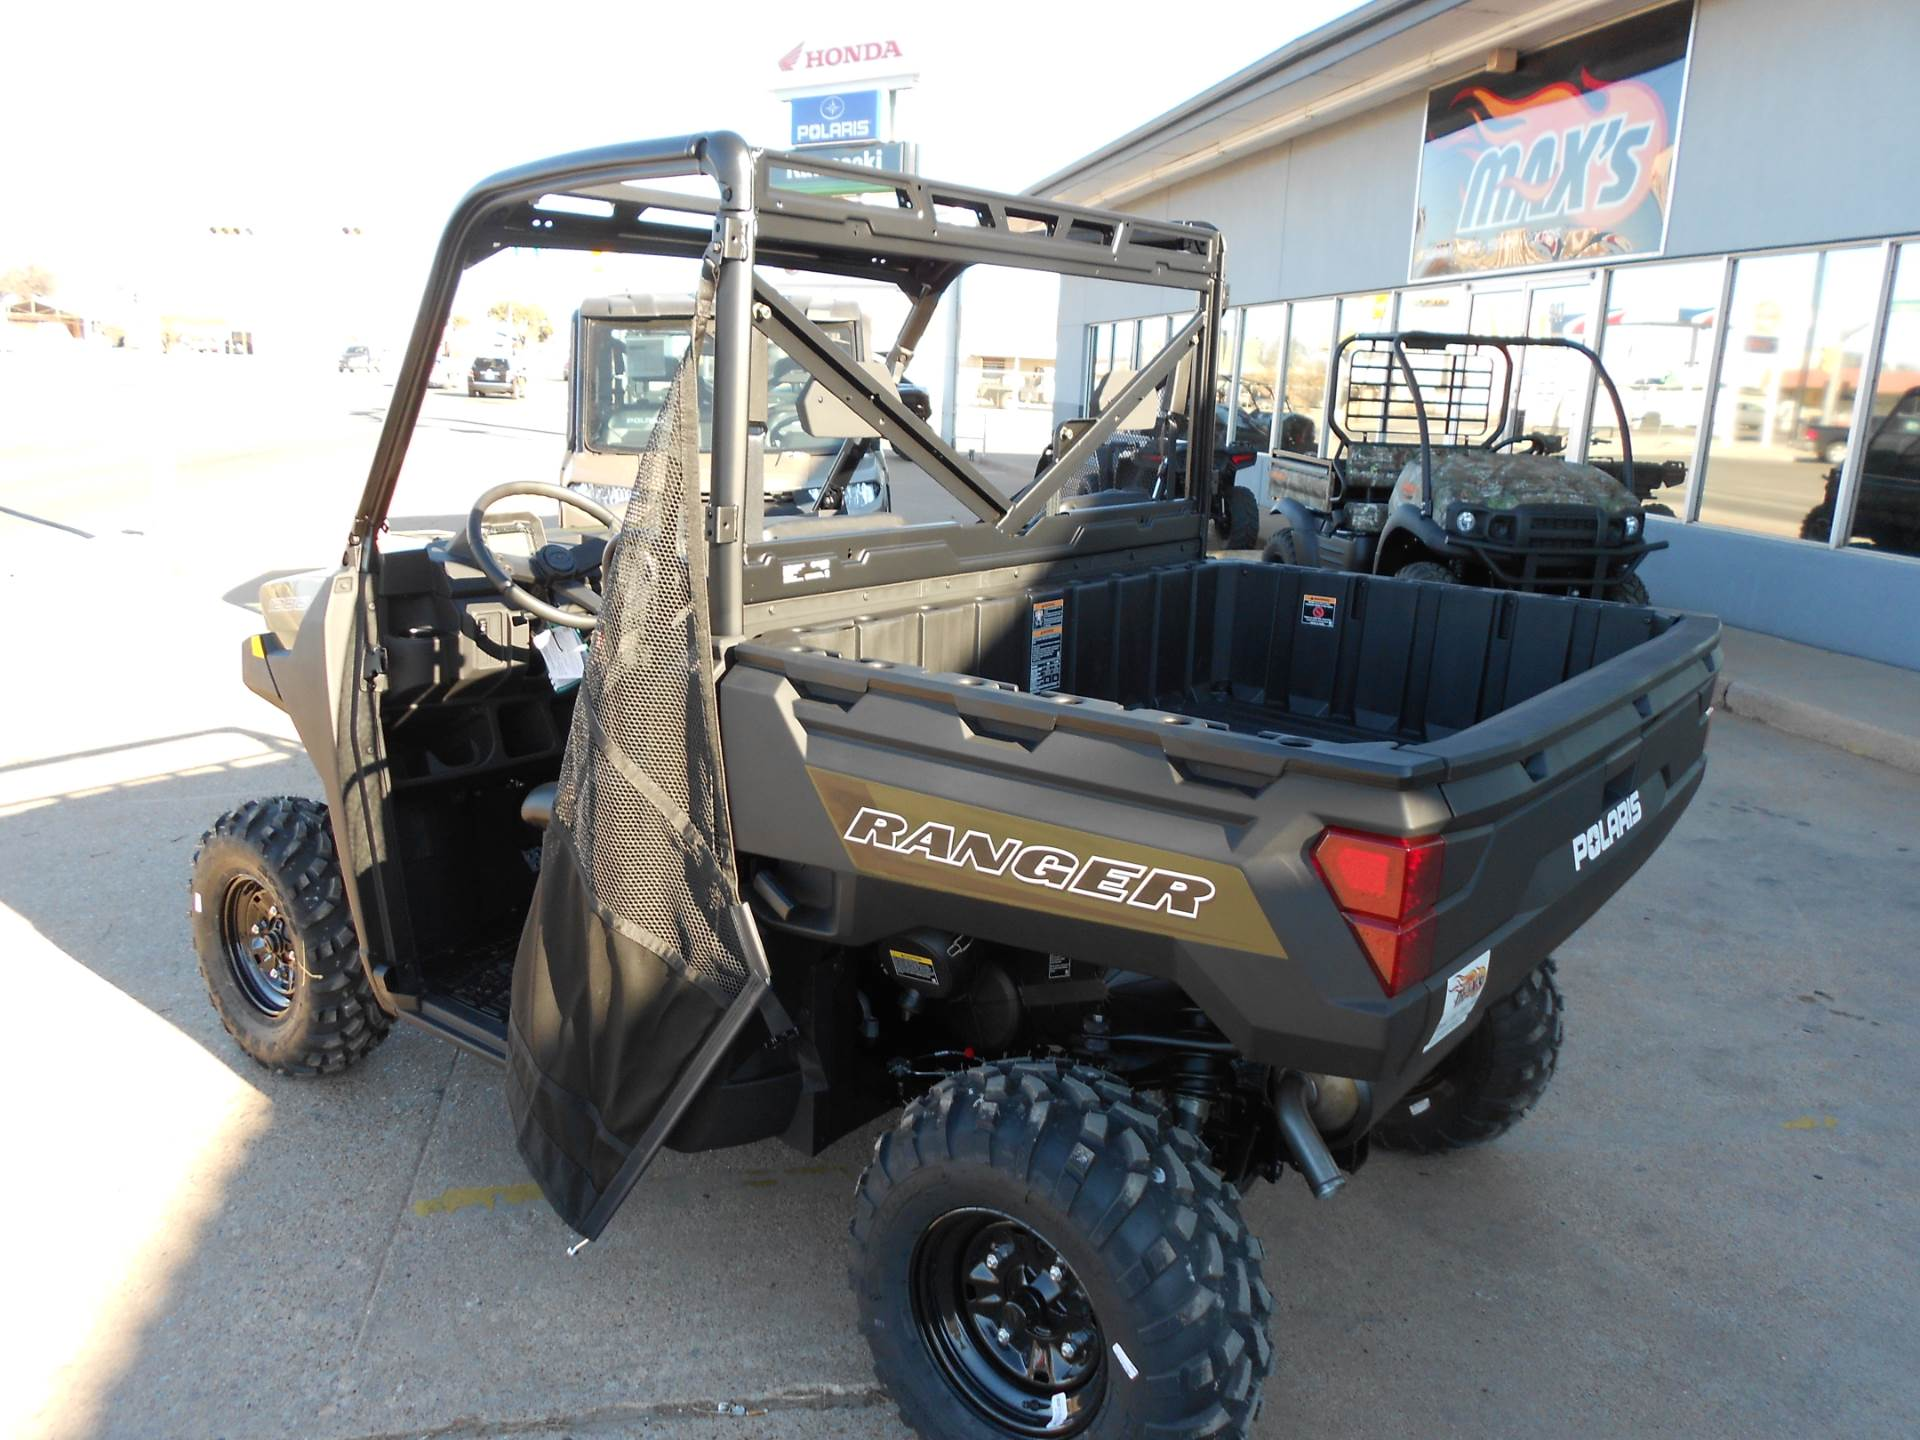 2020 Polaris Ranger 1000 in Abilene, Texas - Photo 3